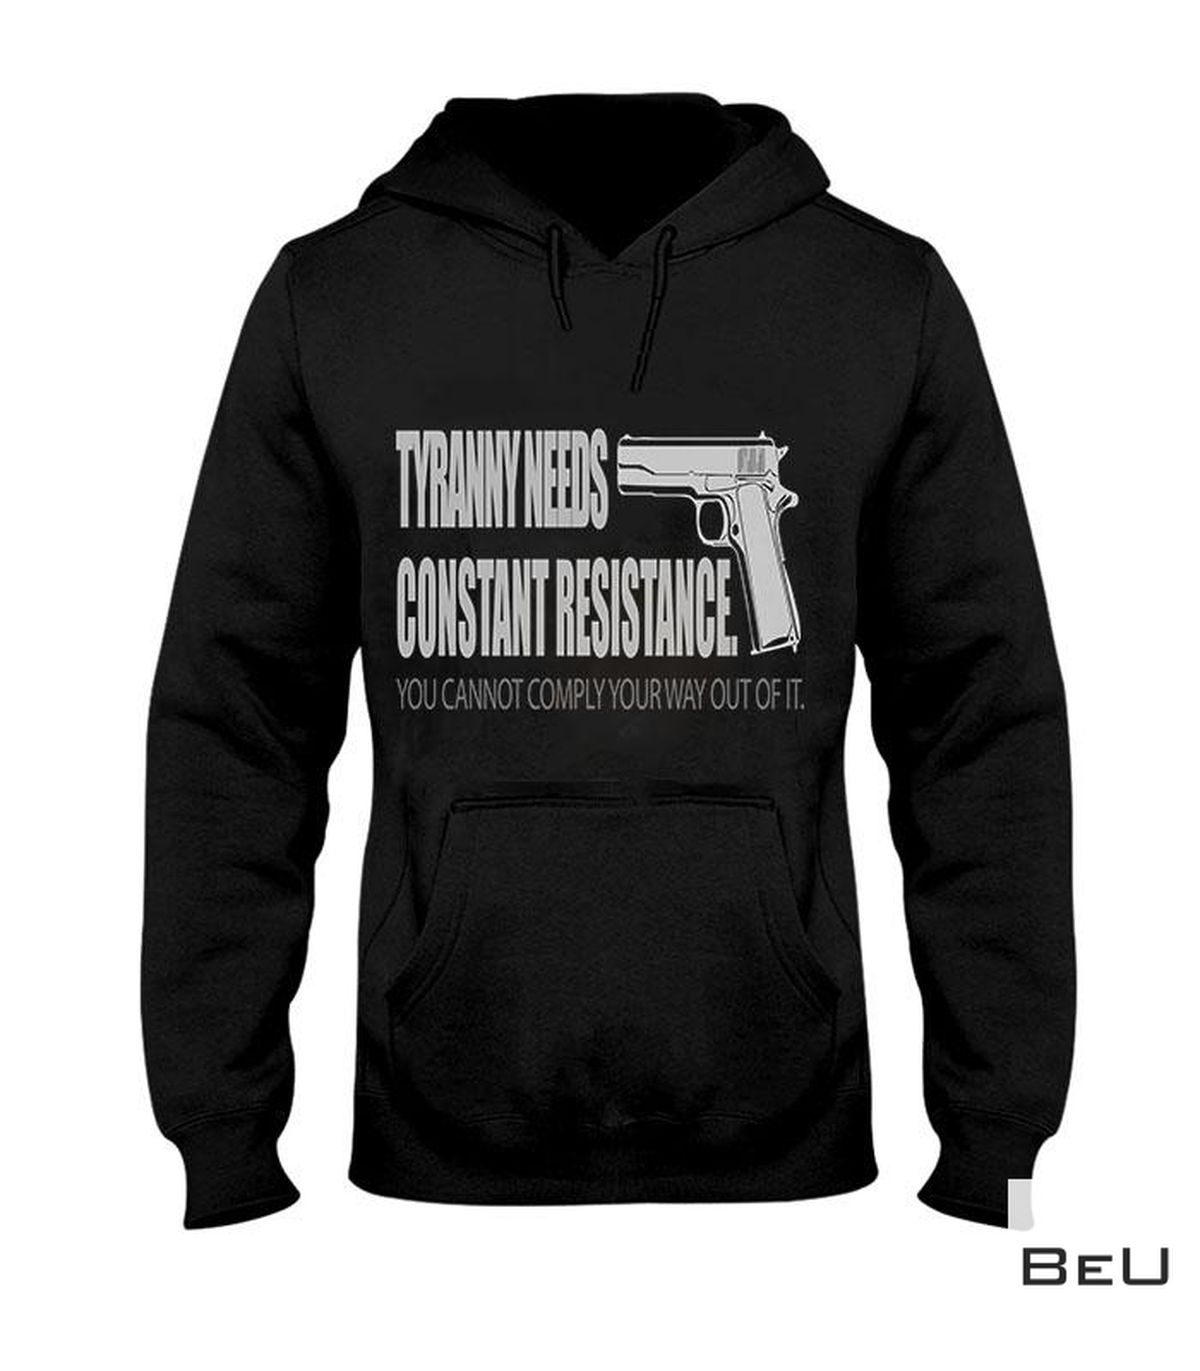 Clothing Tyranny Needs Constant Resistance You Cannot Comply Your Way Out Of It Shirt